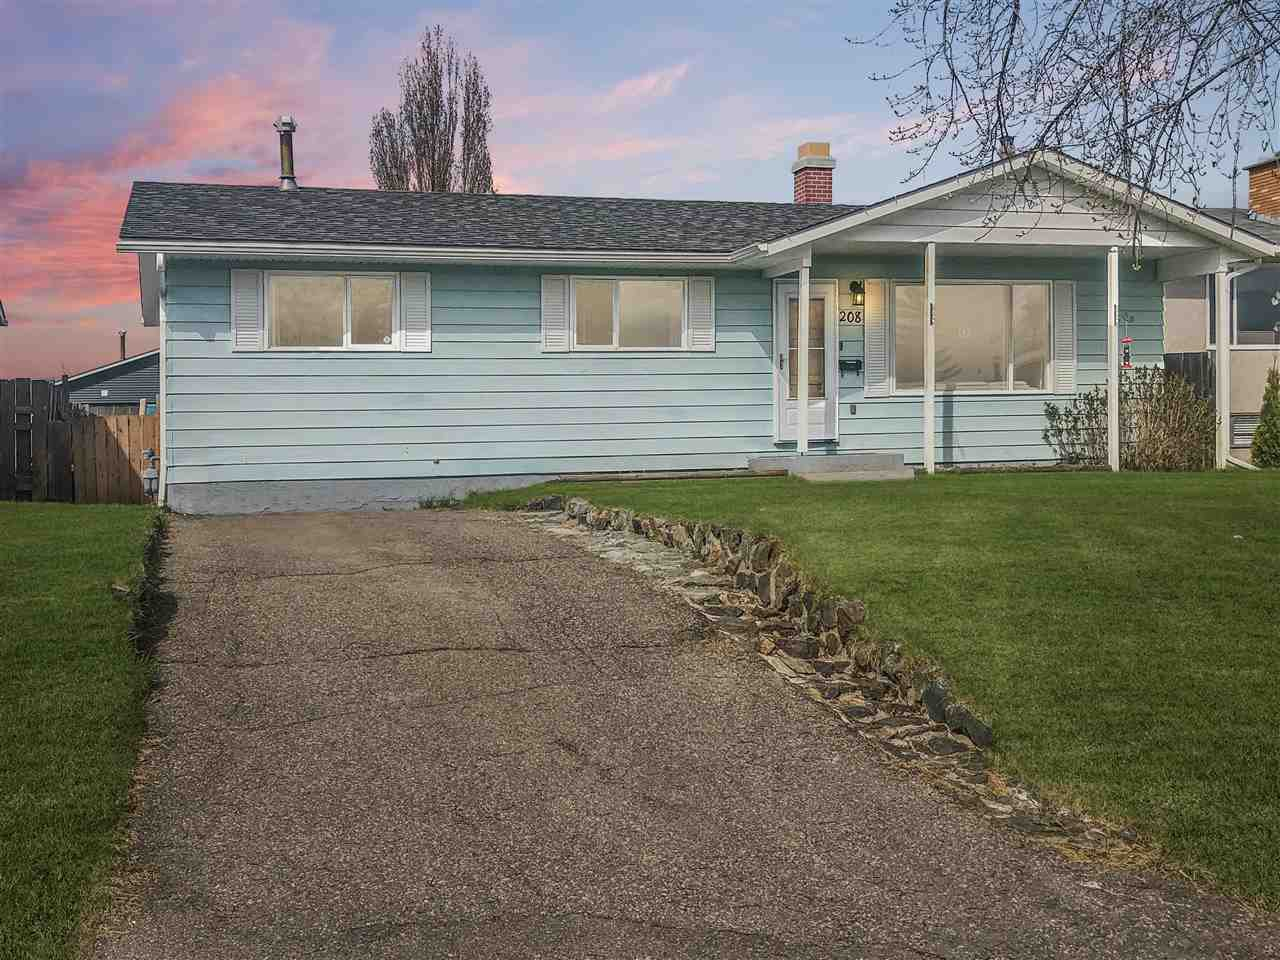 """Main Photo: 208 CLARK Crescent in Prince George: Heritage House for sale in """"Heritage"""" (PG City West (Zone 71))  : MLS®# R2453310"""